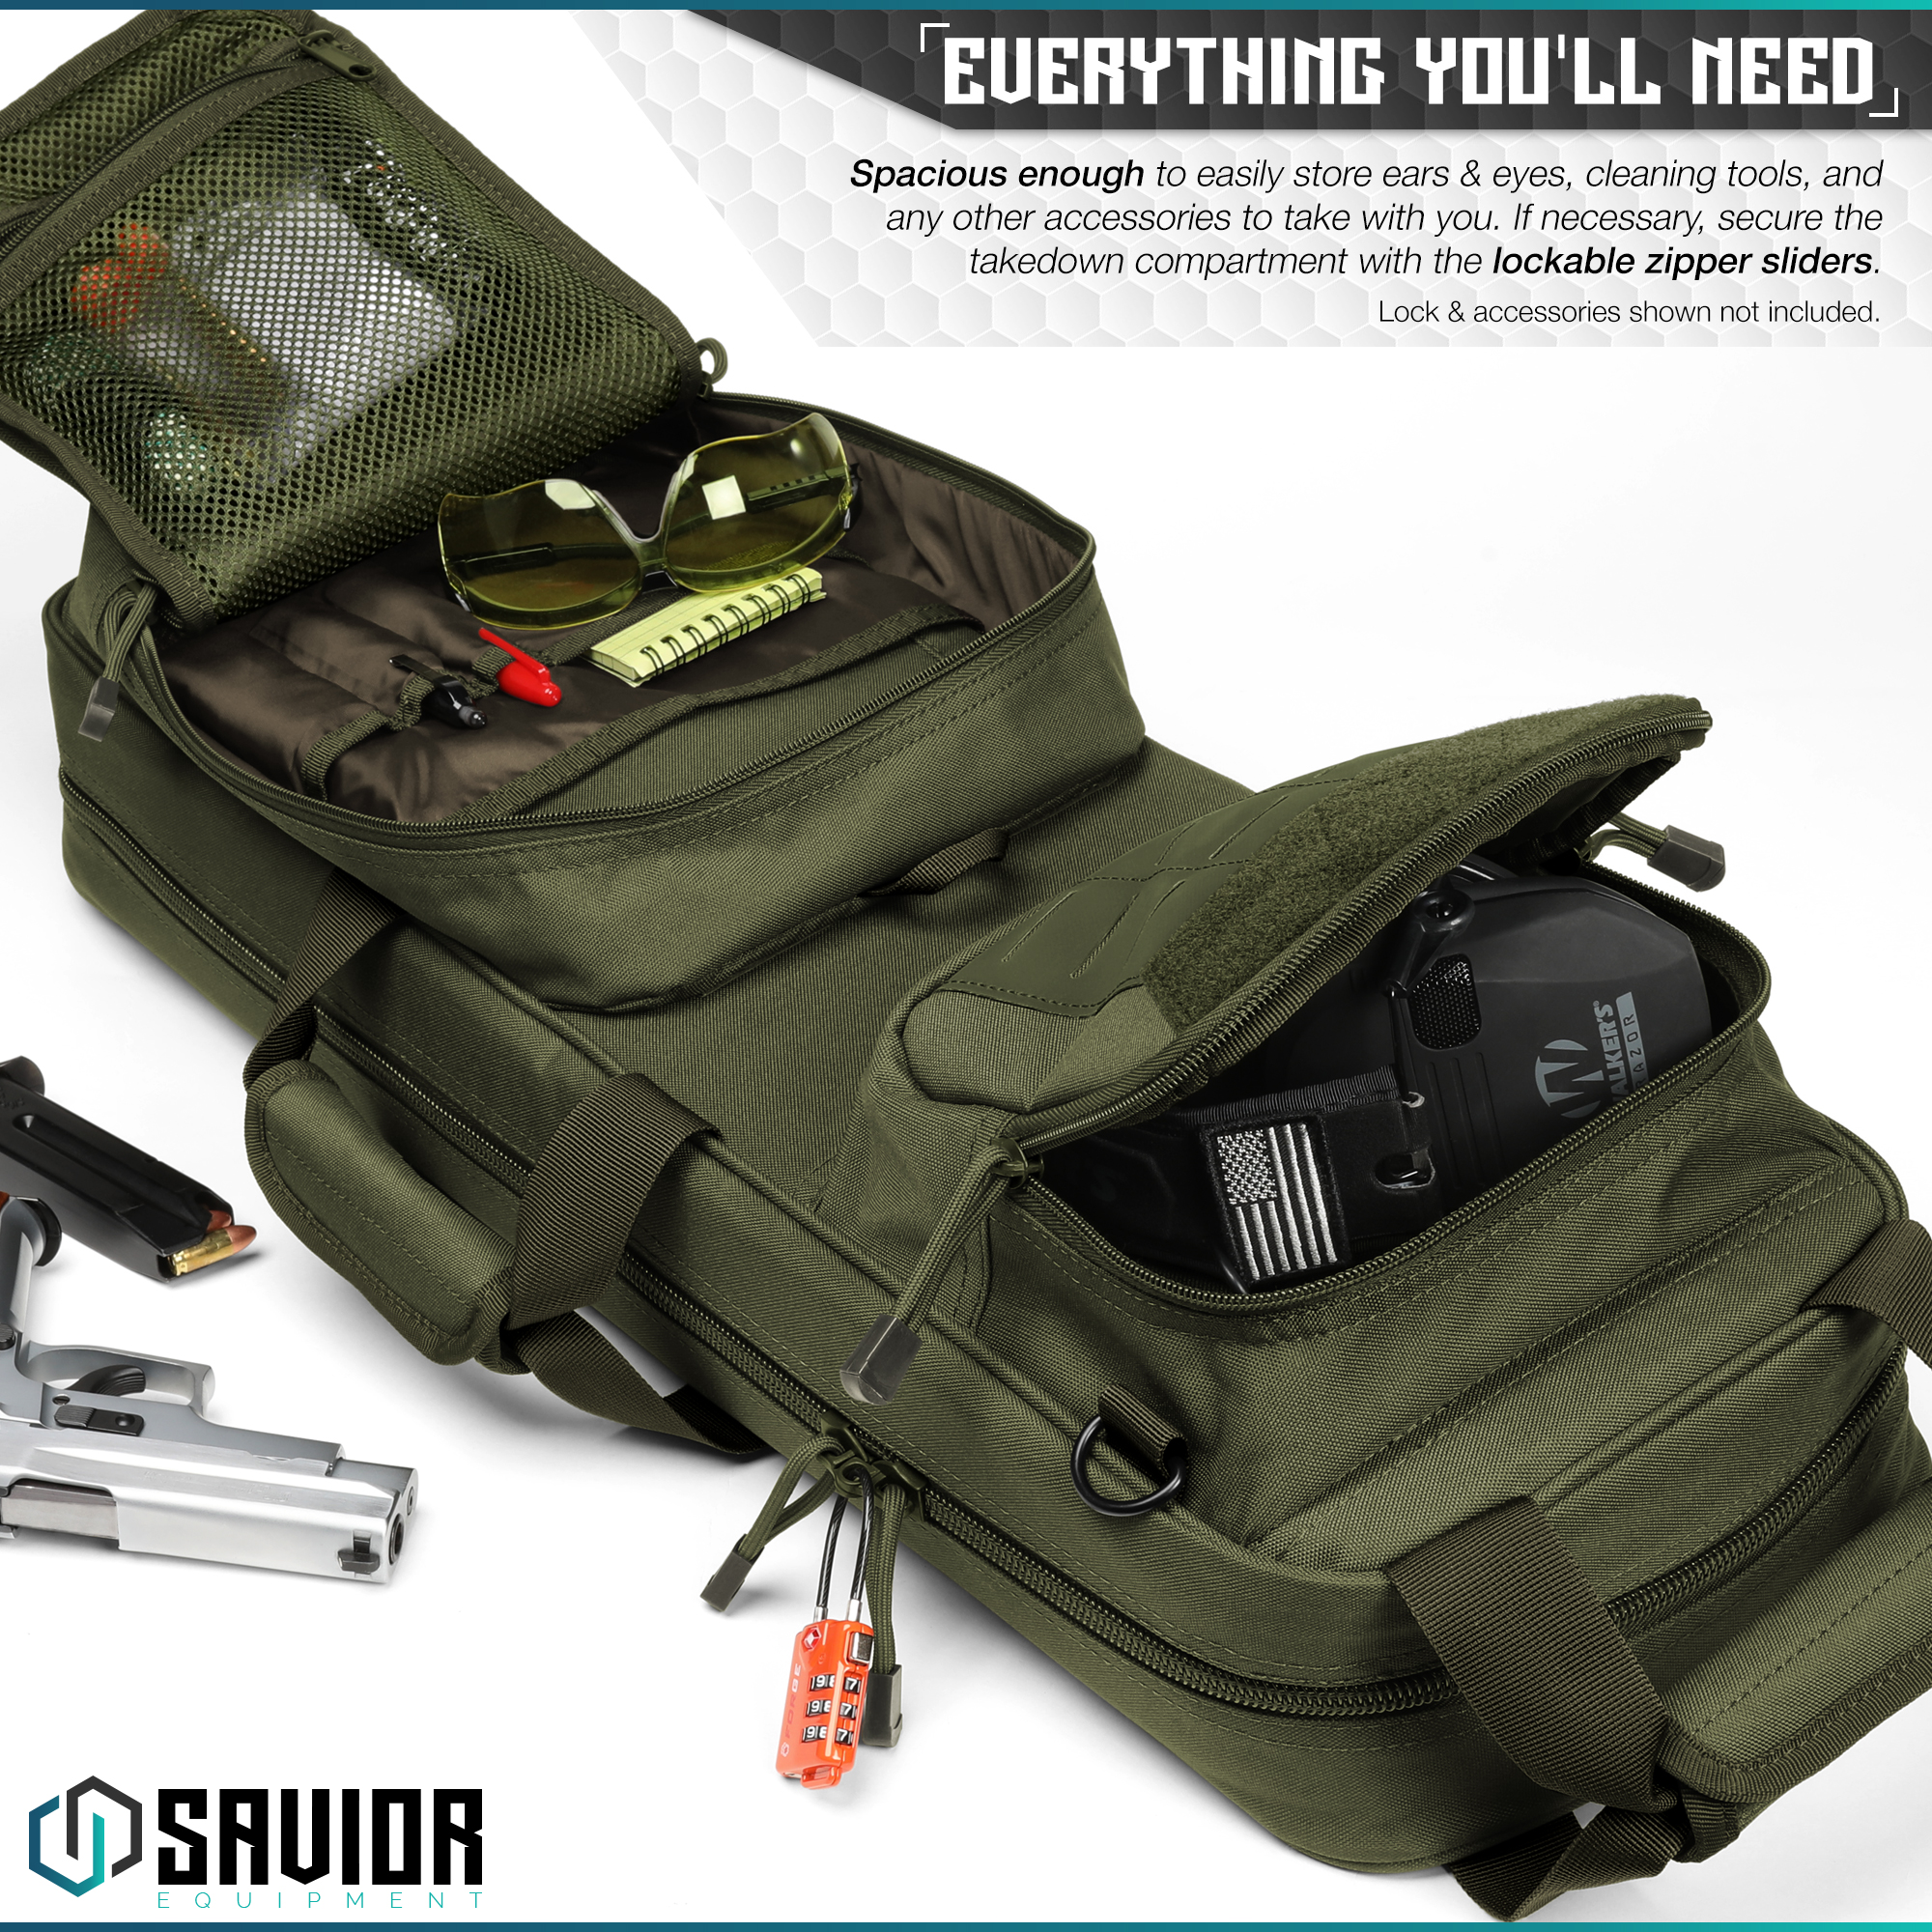 Savior-Tactical-Urban-Takedown-Bag-Carbine-Rifle-Padded-Shotgun-Firearm-Backpack thumbnail 17